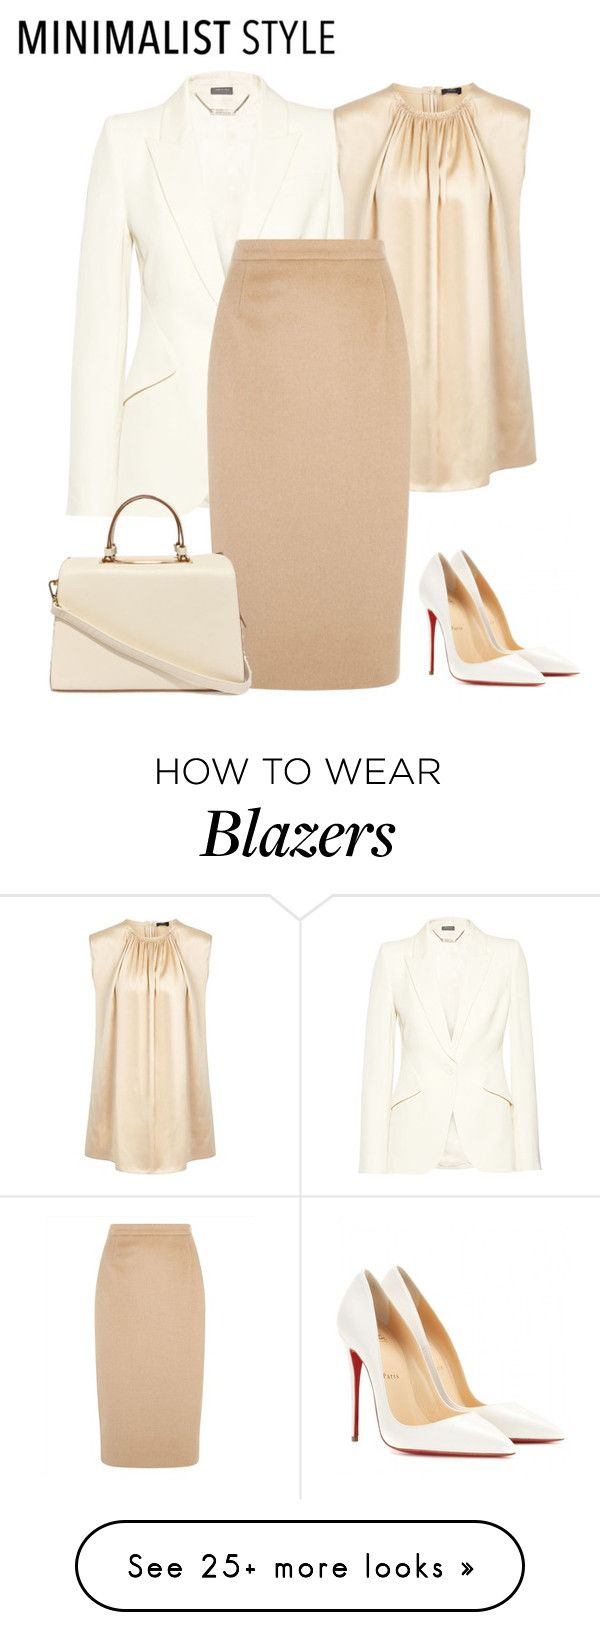 """""""outfit 2778"""" by natalyag on Polyvore featuring moda, Alexander McQueen, Joseph, Jaeger, Christian Louboutin y Nila Anthony"""